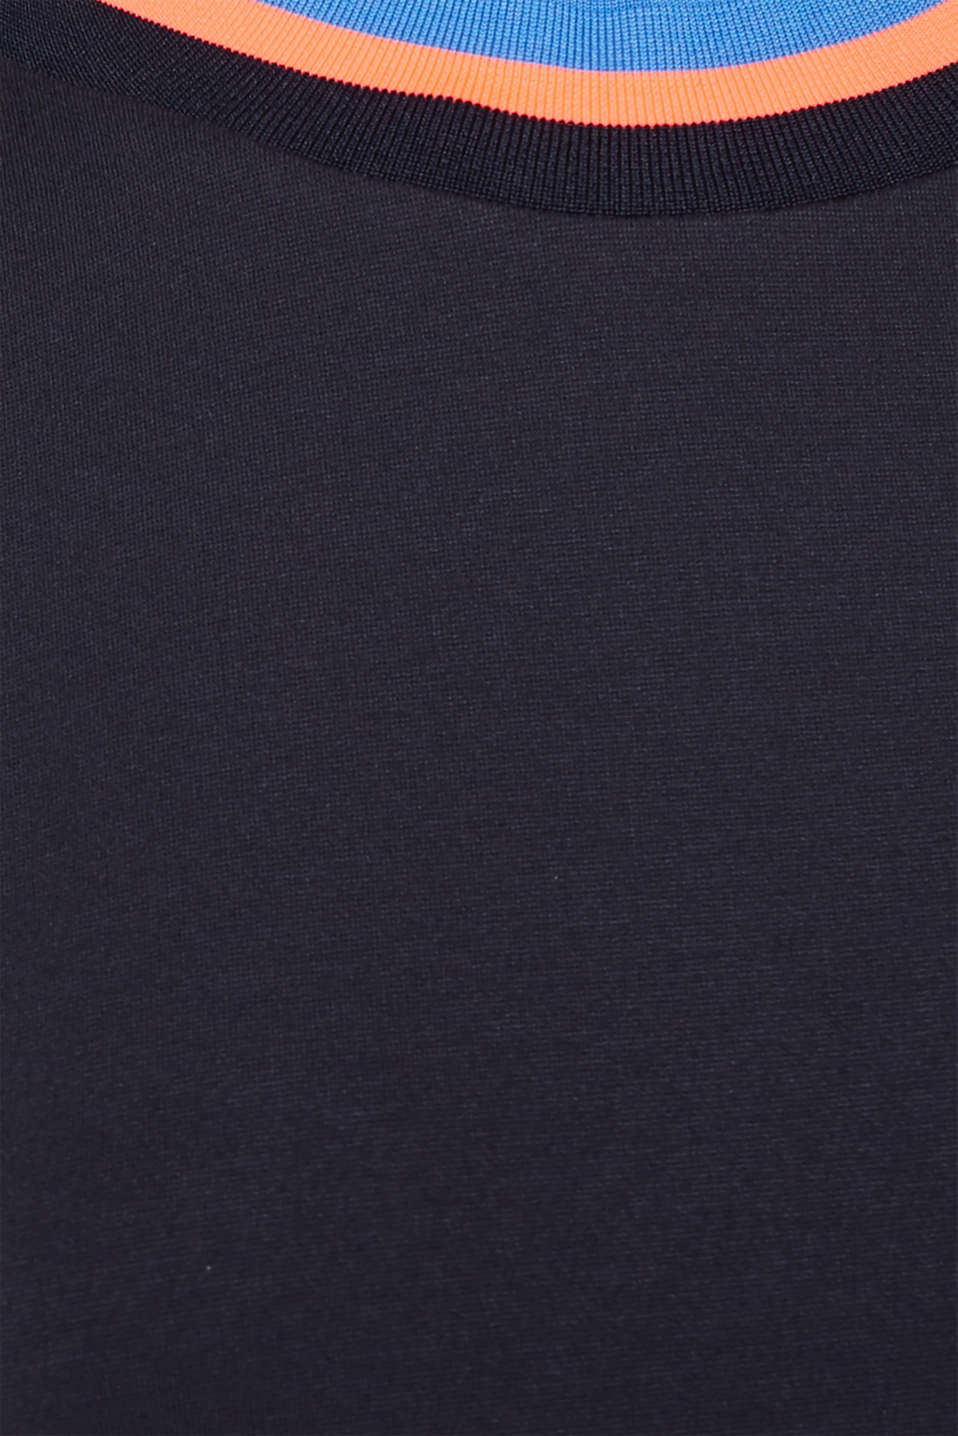 Stretch jersey dress with striped borders, NAVY, detail image number 4